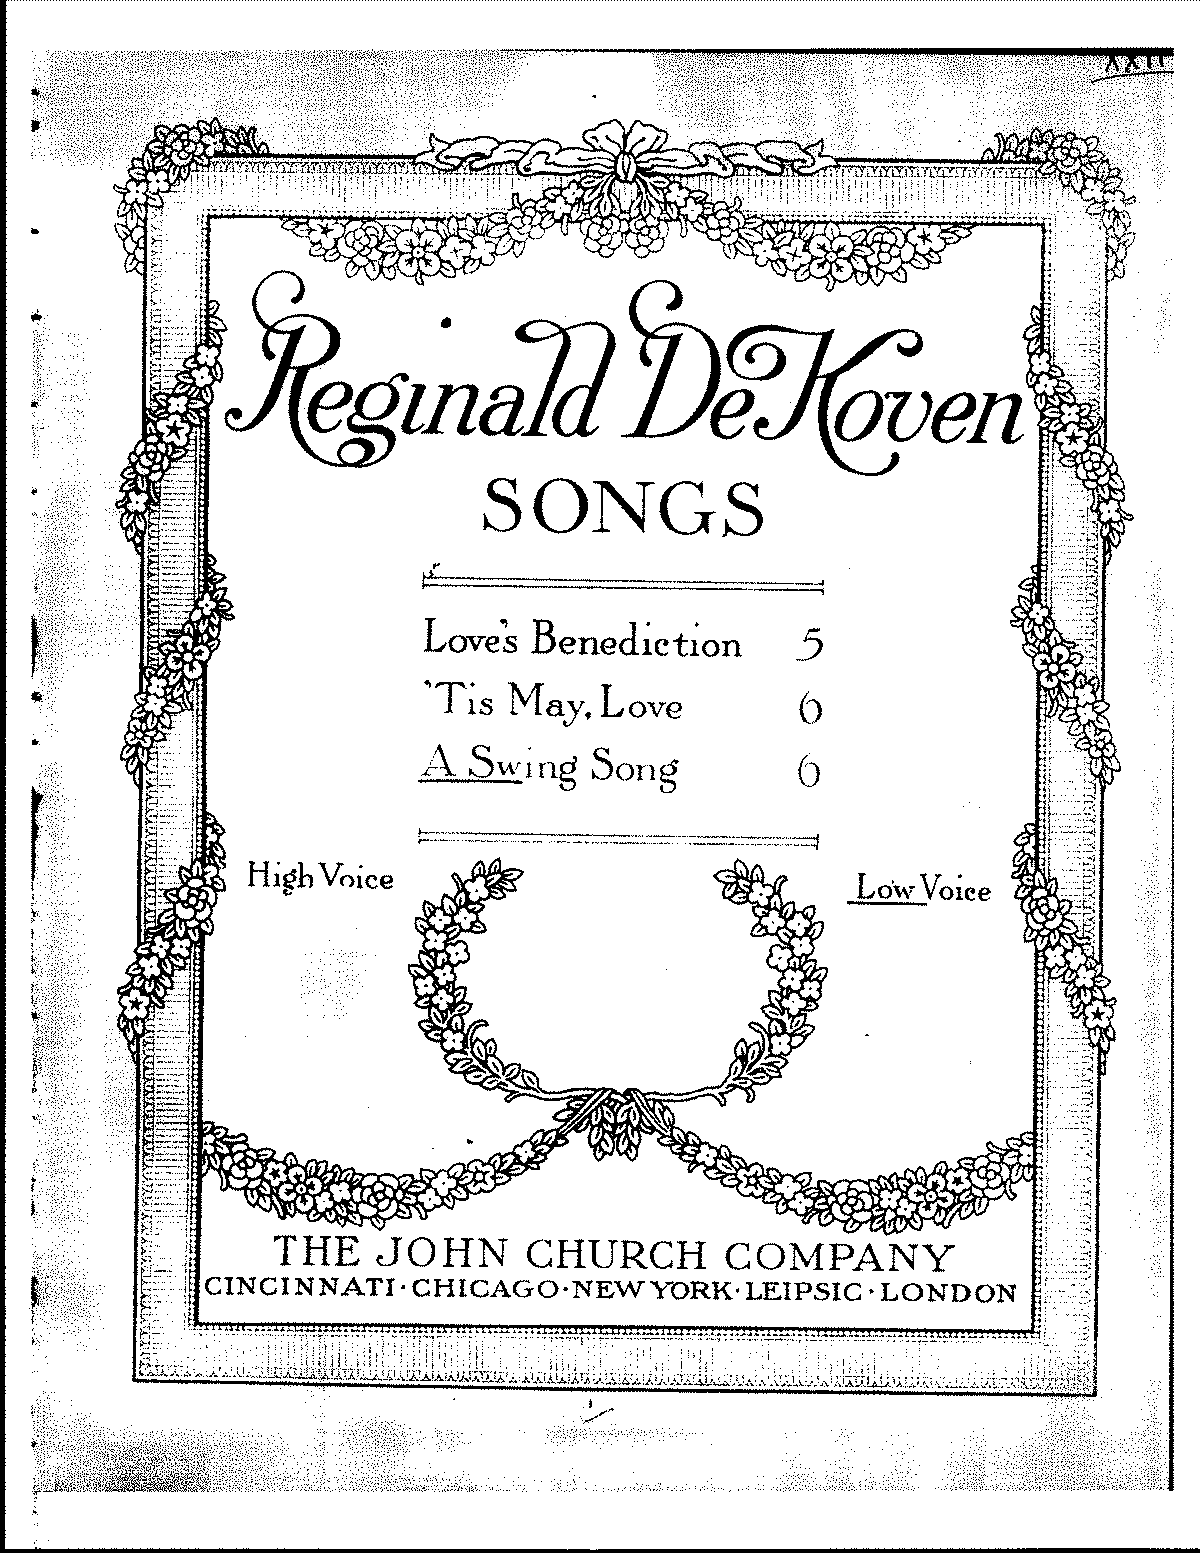 PMLP227606-De Koven Songs A Swing-low cropped.pdf